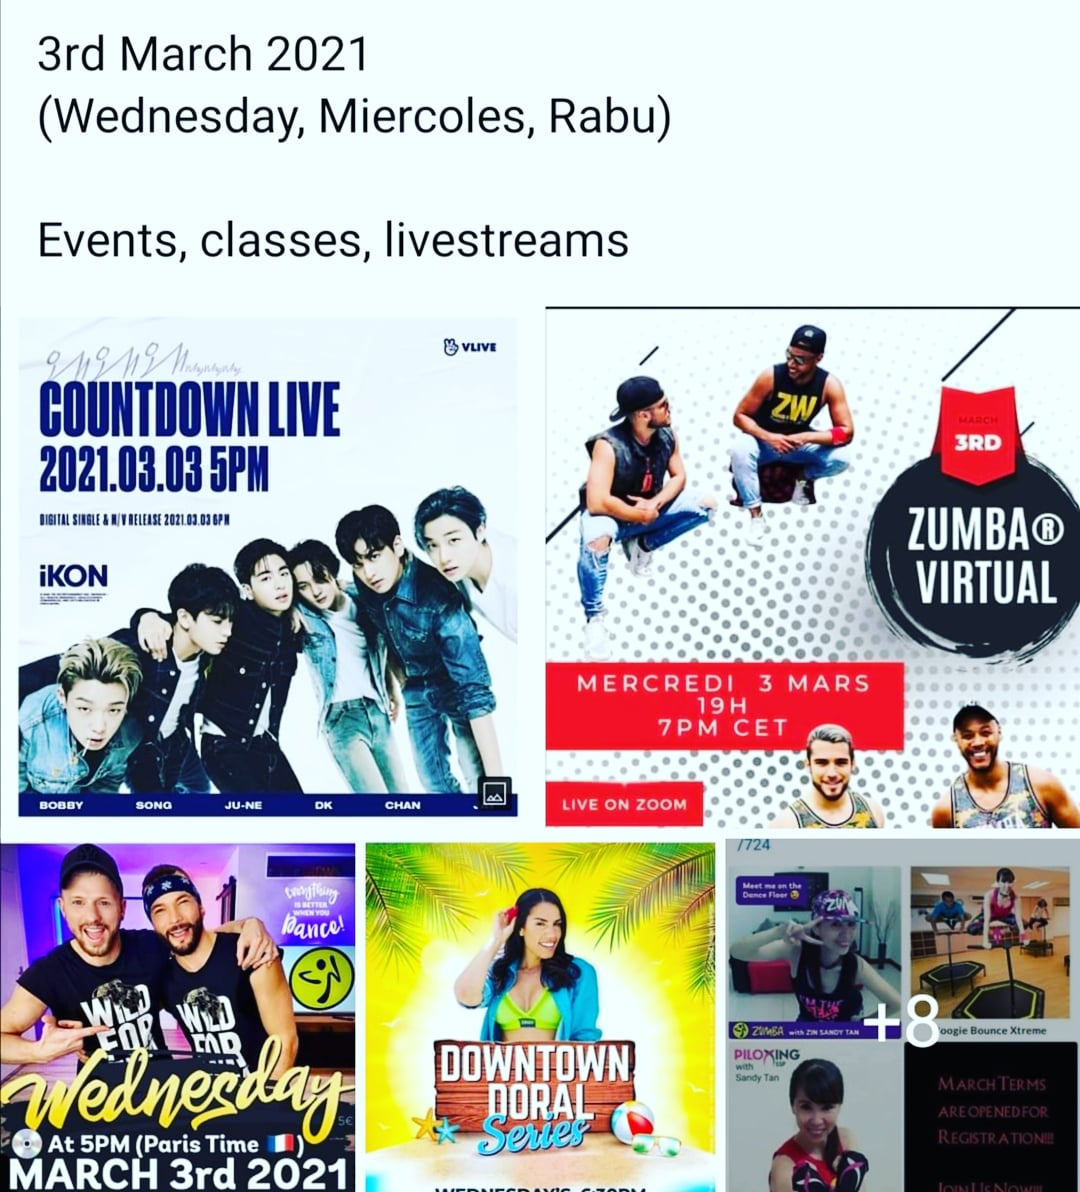 03.03.2021 (Wednesday, Miercoles, Rabu)    #03032021 #Wednesday #Miercoles #Rabu #classes #online #zoom #virtual #zumba #training #ZJ #ikon #whywhywhy #dancefitness #fitness  #workout #danceworkout #danceclass #partyathome #events #linlin  @LinLinPartyBabe